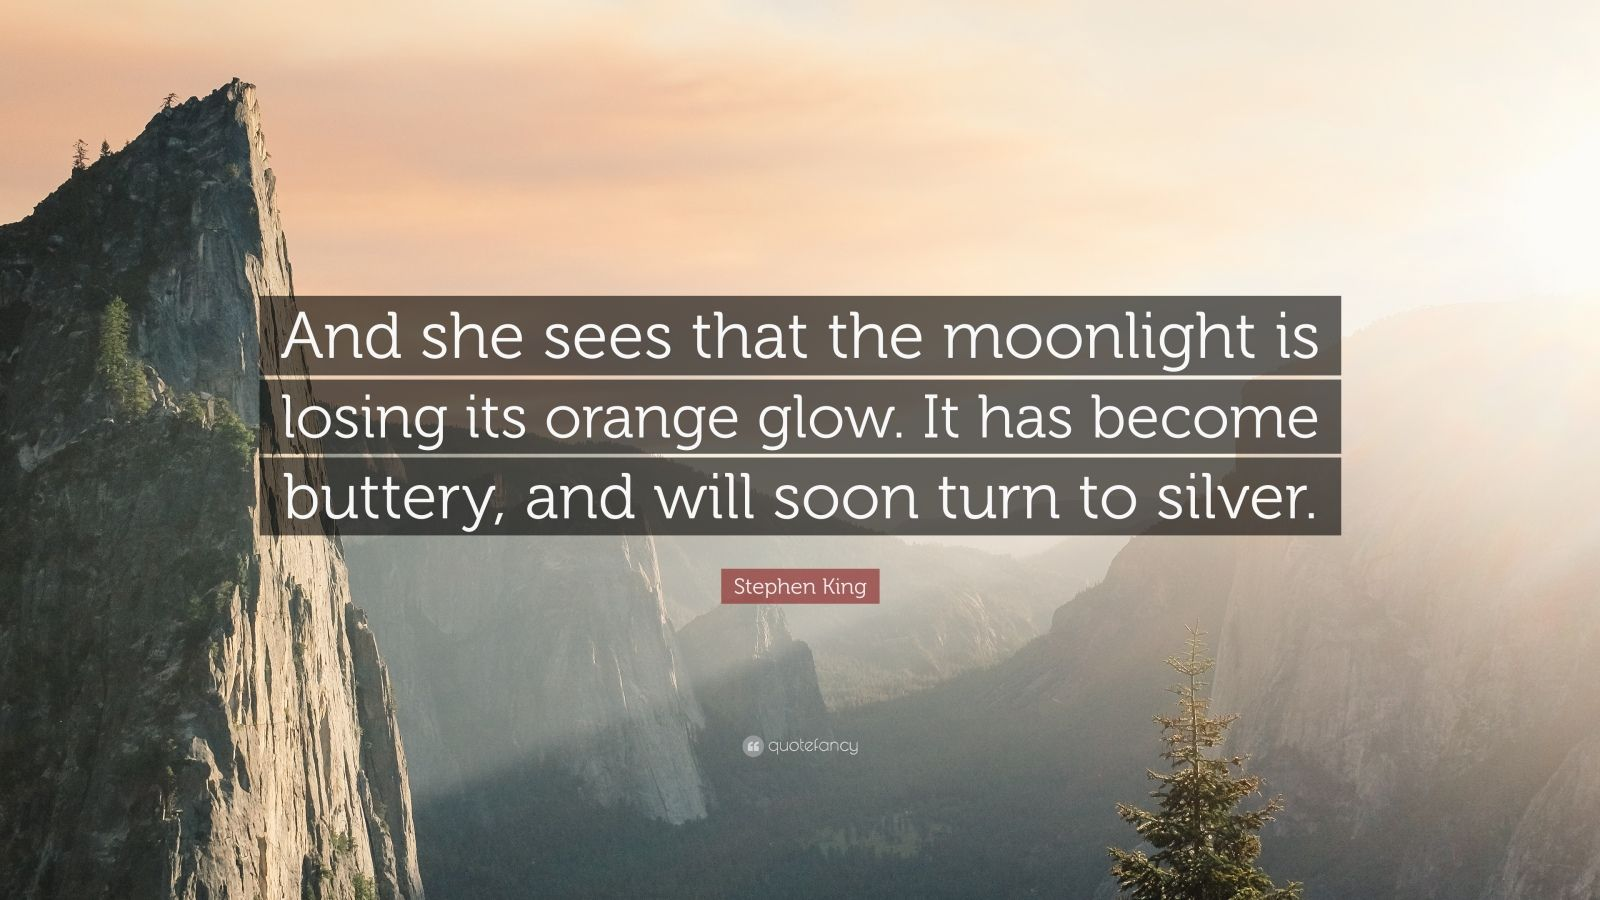 """Stephen King Quote: """"And she sees that the moonlight is losing its orange glow. It has become buttery, and will soon turn to silver."""""""